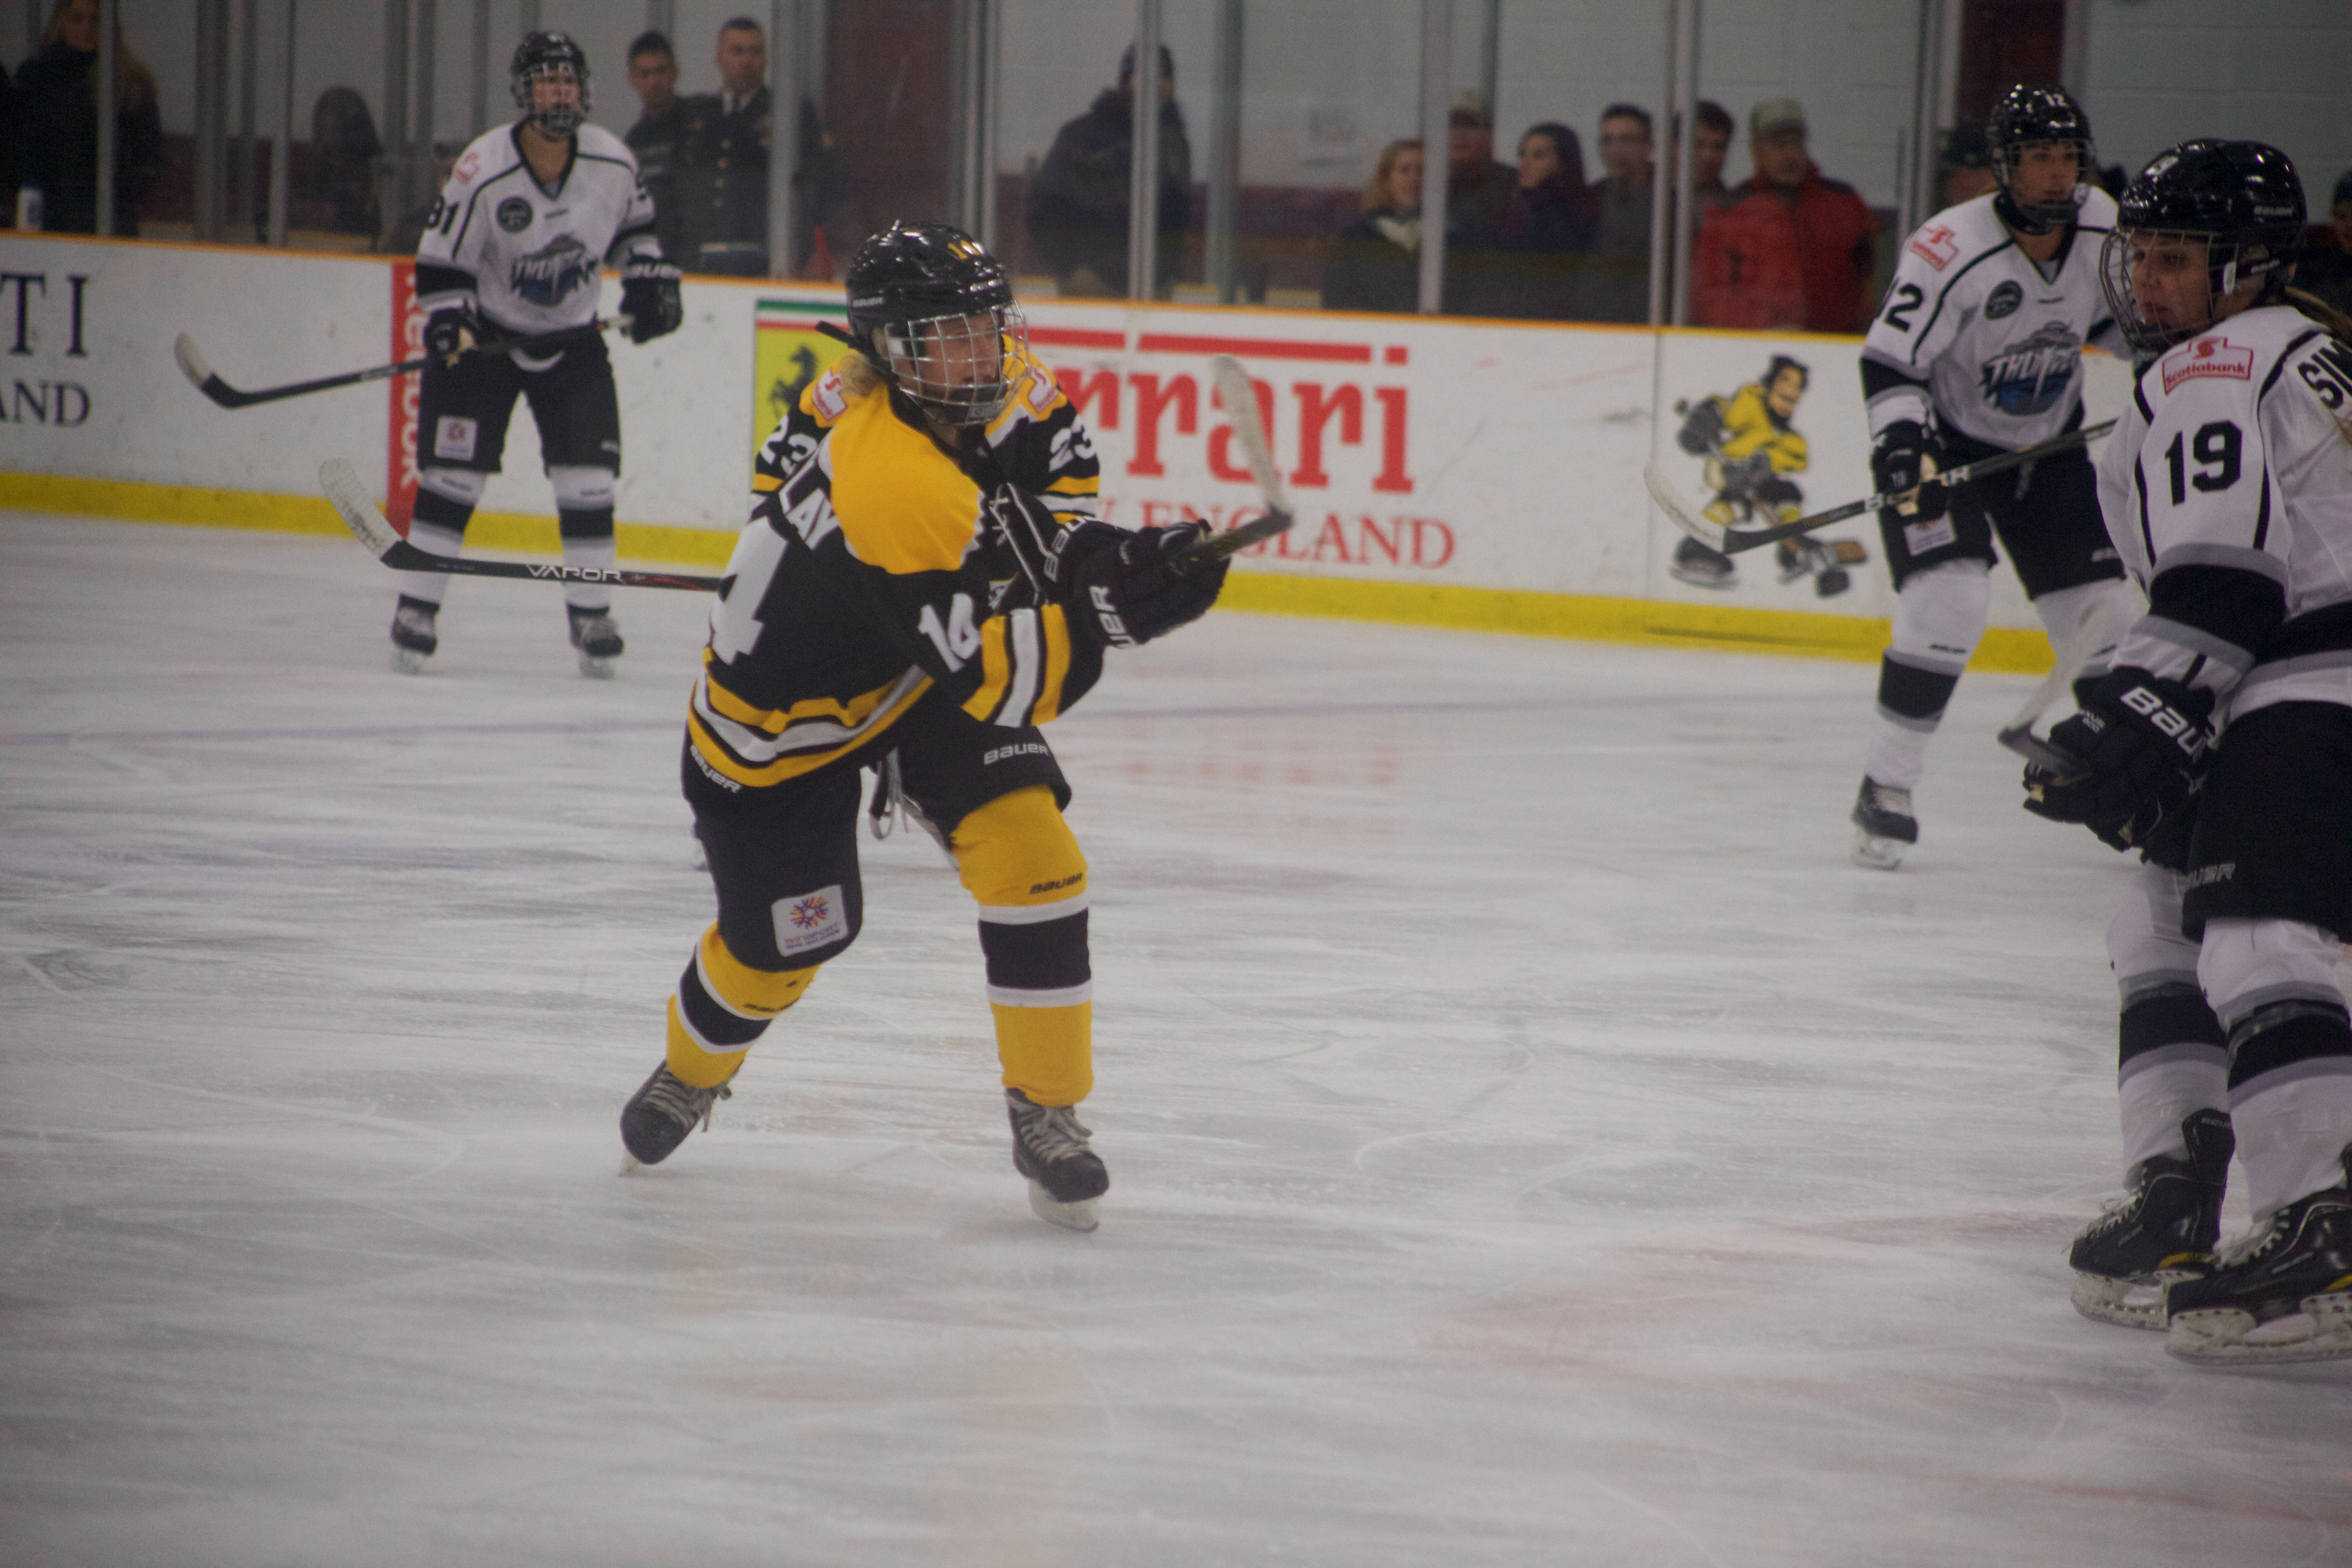 Blades forward Elizabeth Tremblay scores her second goal of the season in her team's 2-1 loss against Brampton.